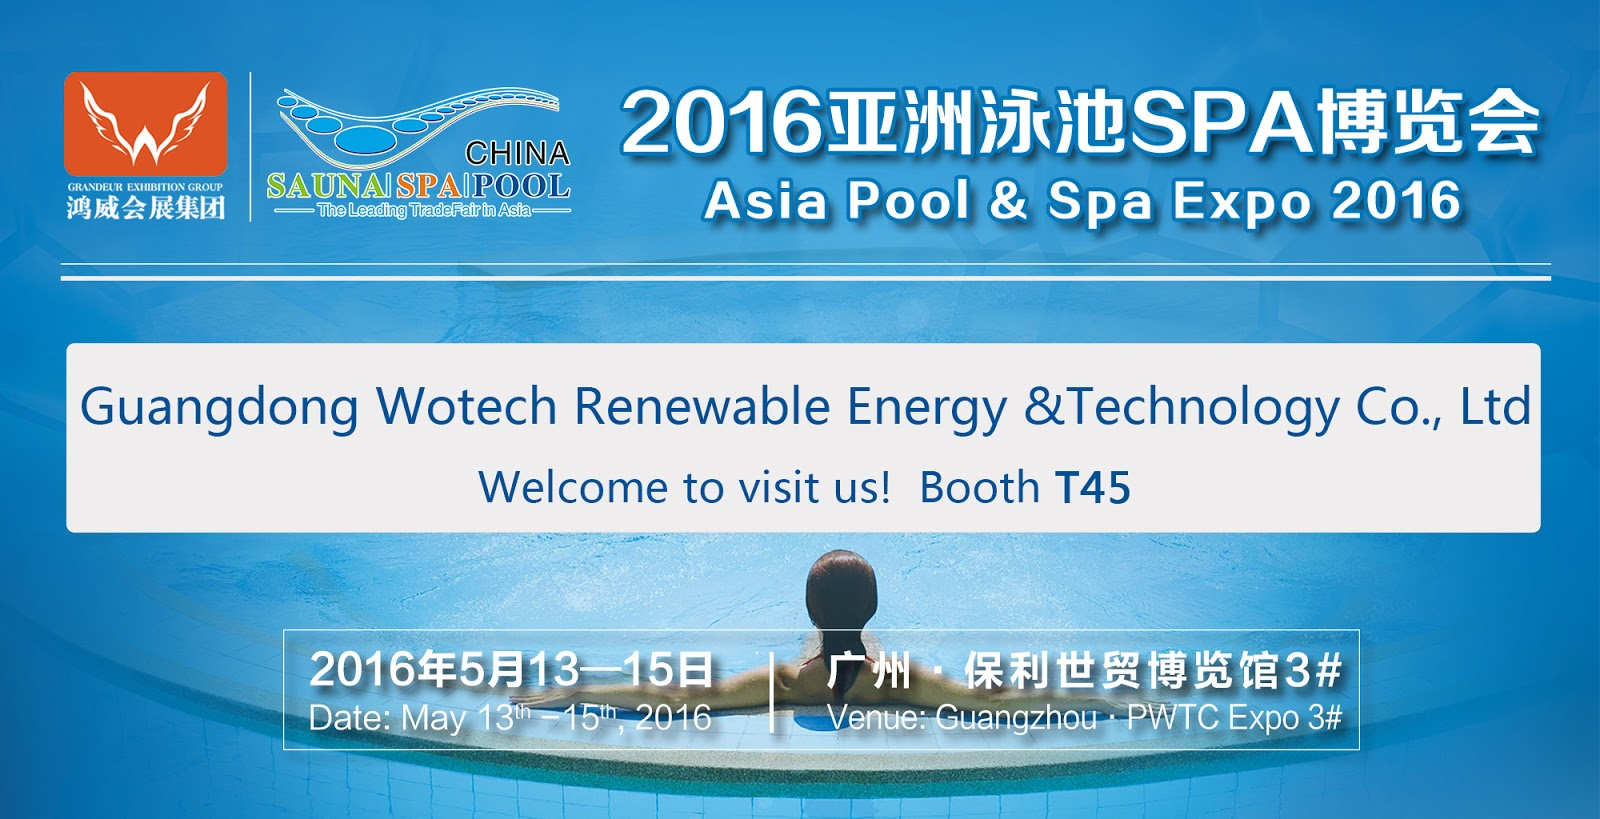 Heat pump for Pool spa show 2016